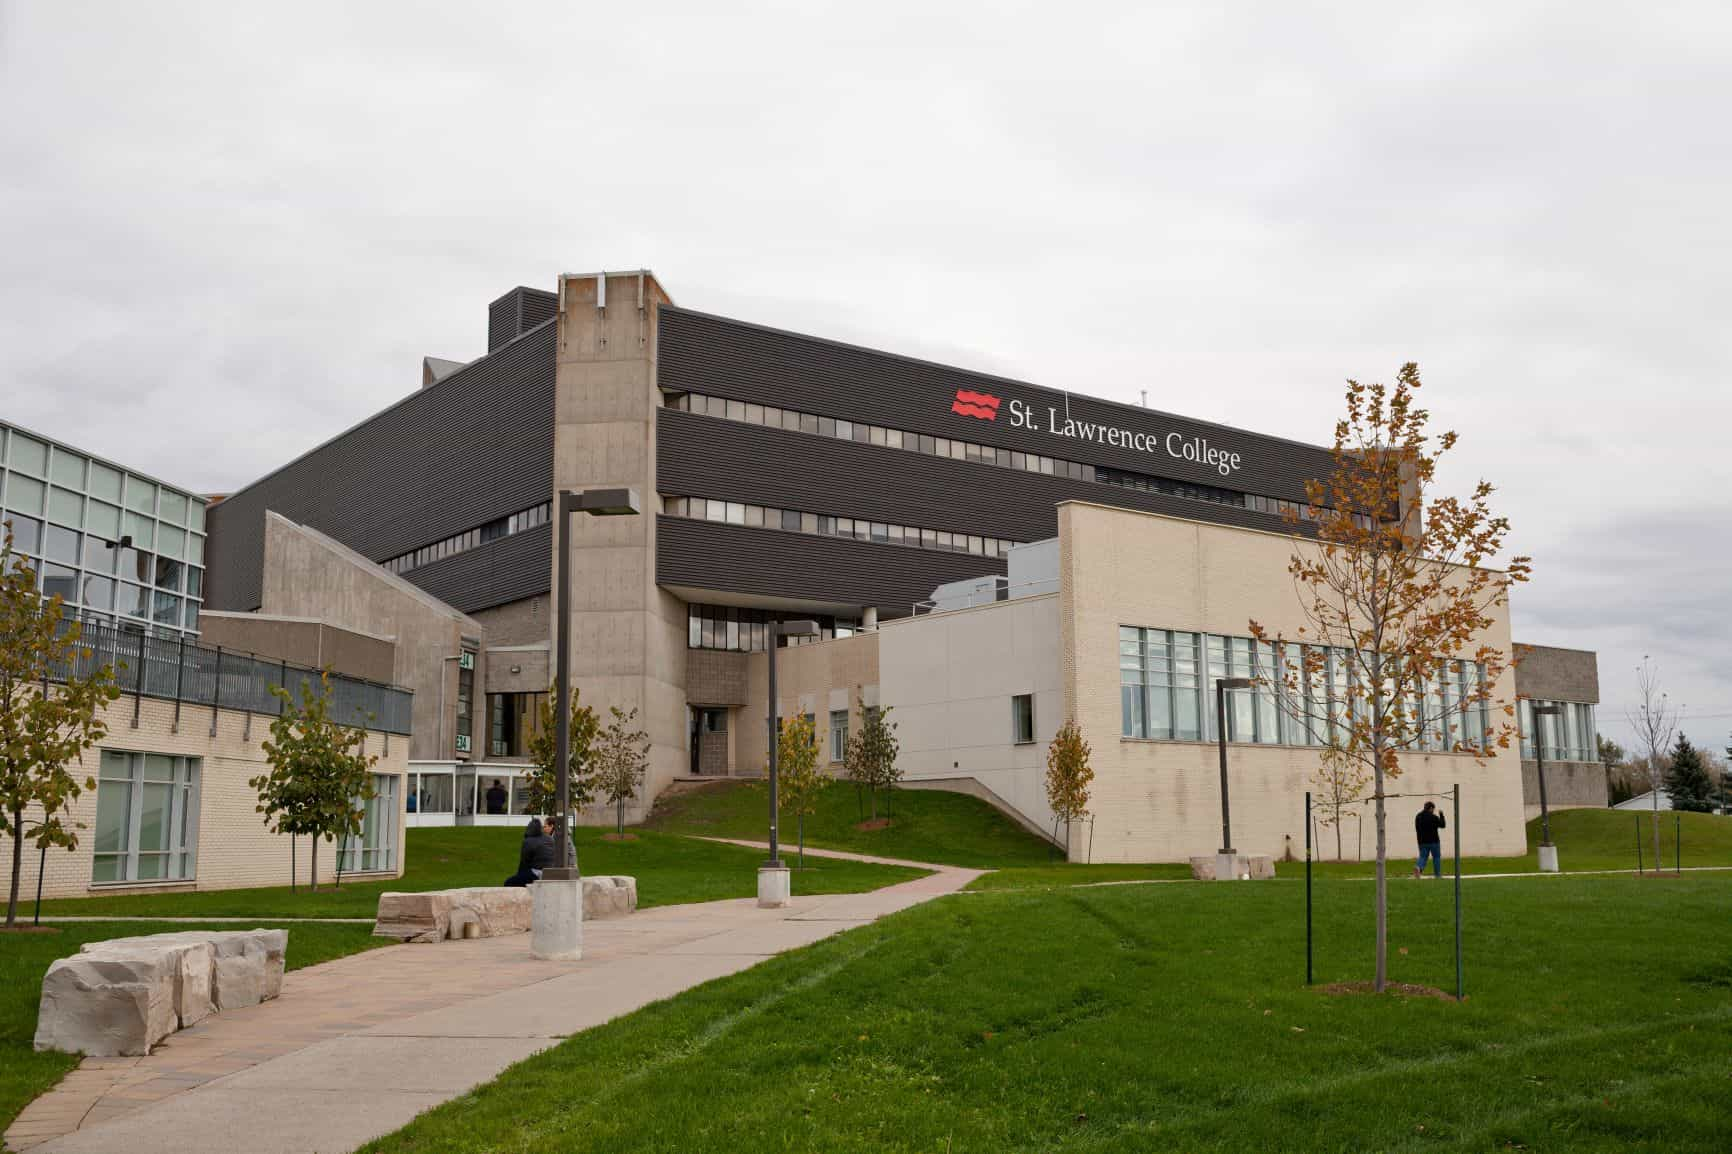 Photograph of St. Lawrence College's Kingston Campus